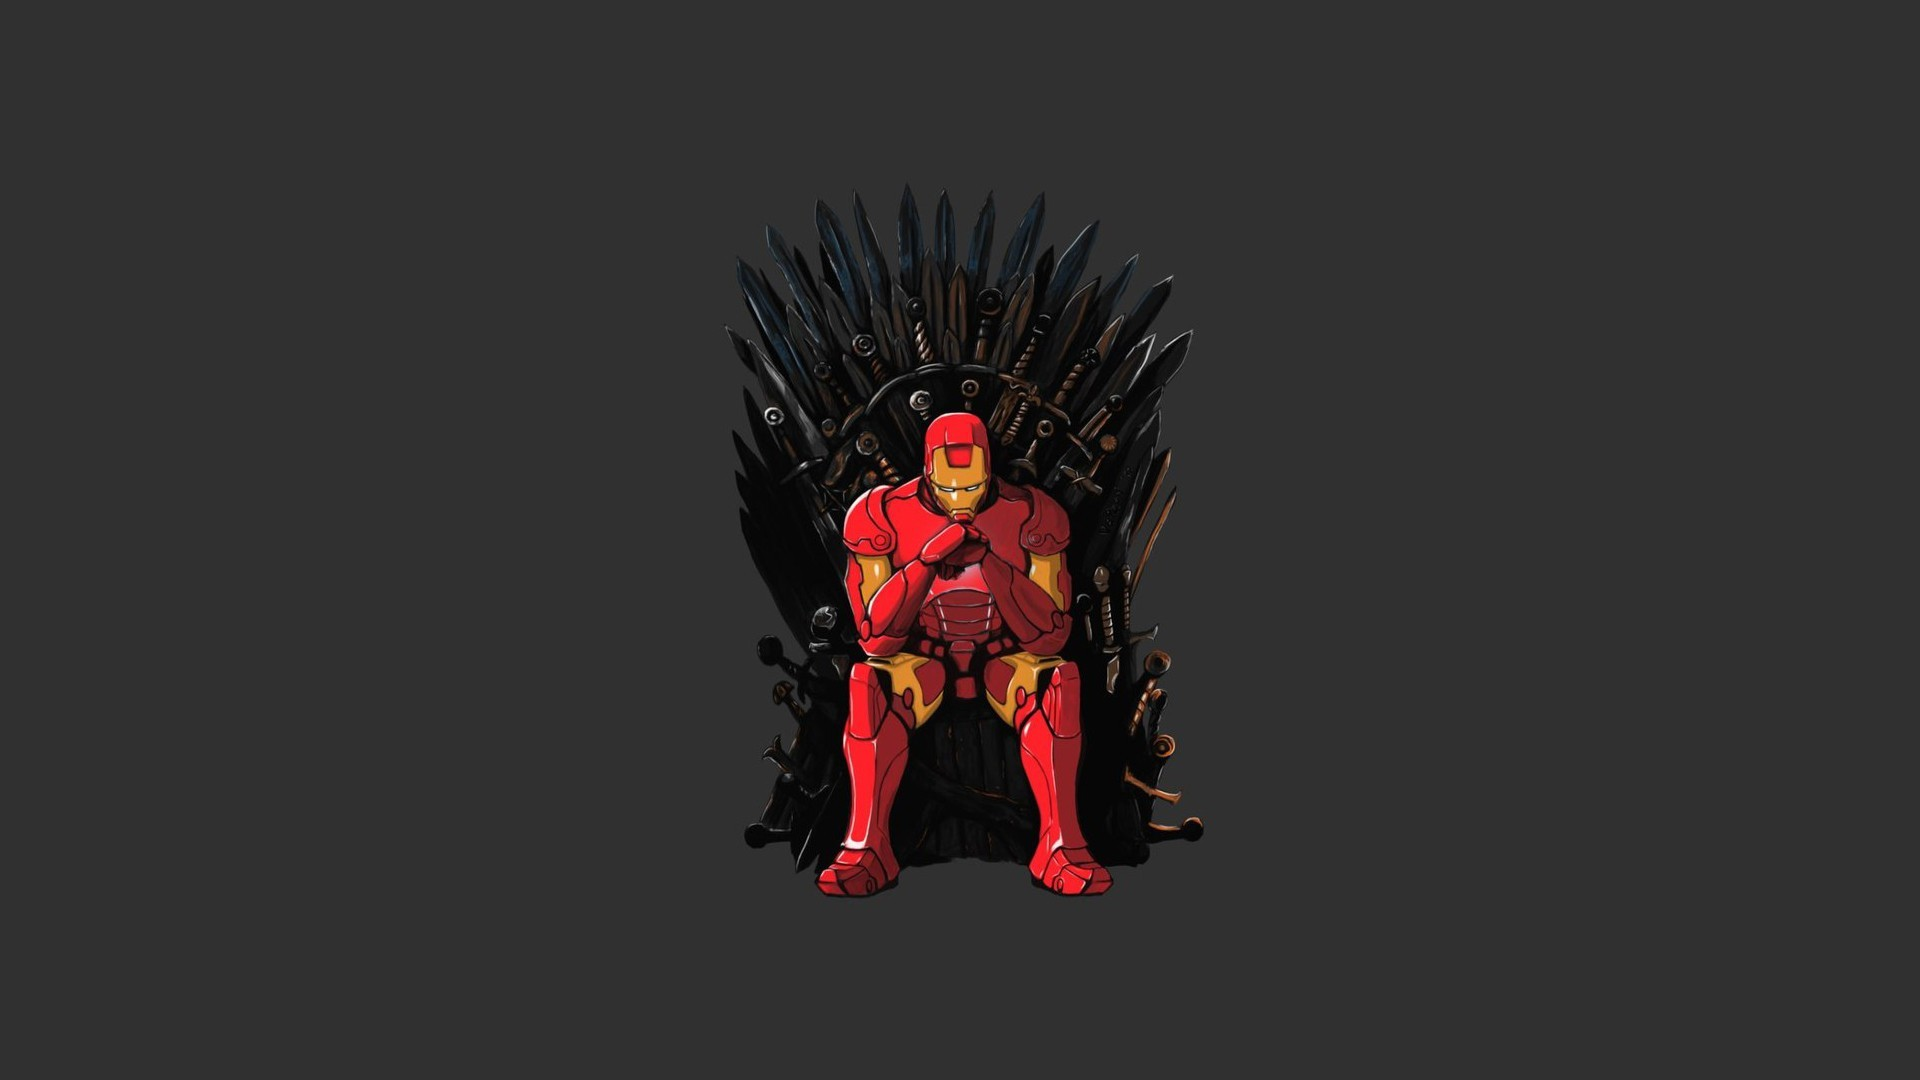 1920x1080  Iron Man Game of Thrones Mashup